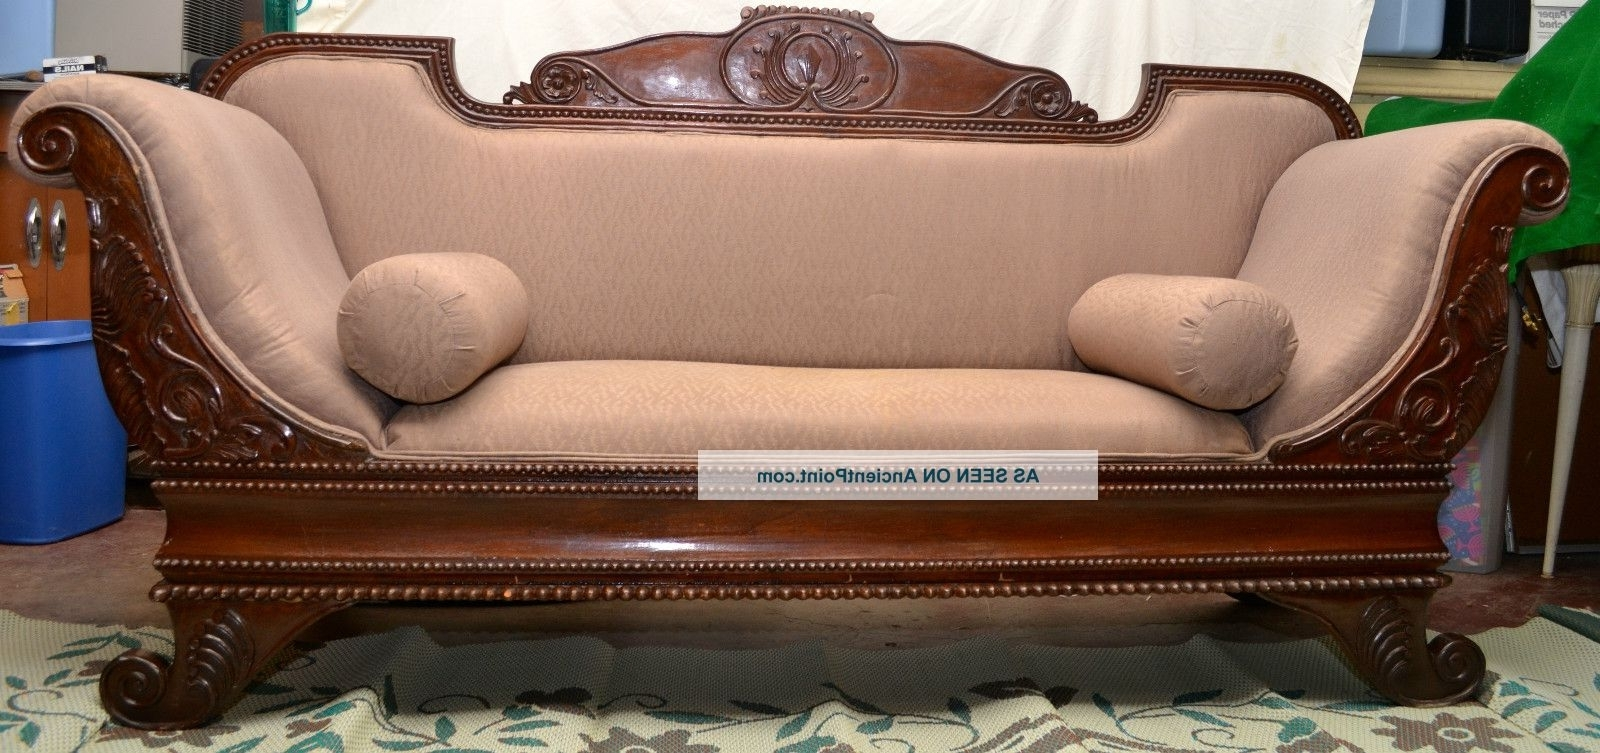 2019 Gothic Sofas Intended For Cleopatra Gothic/old West/victorian Sofa 1800 1899 Photo (View 8 of 20)